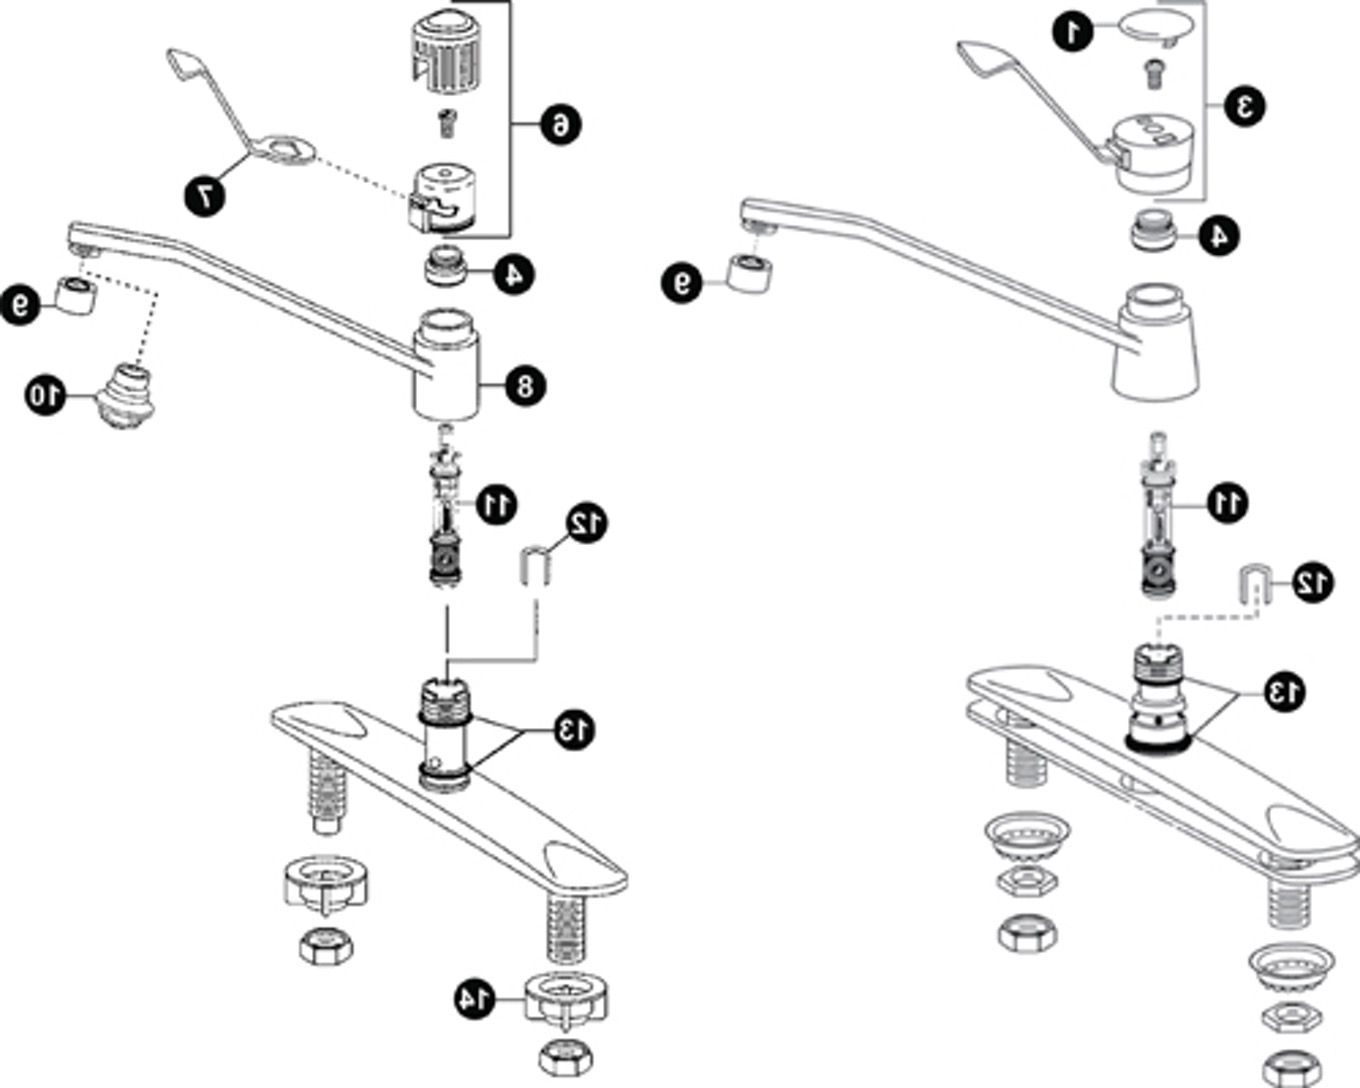 Moen Faucet 7400 Diagram Manual Guide